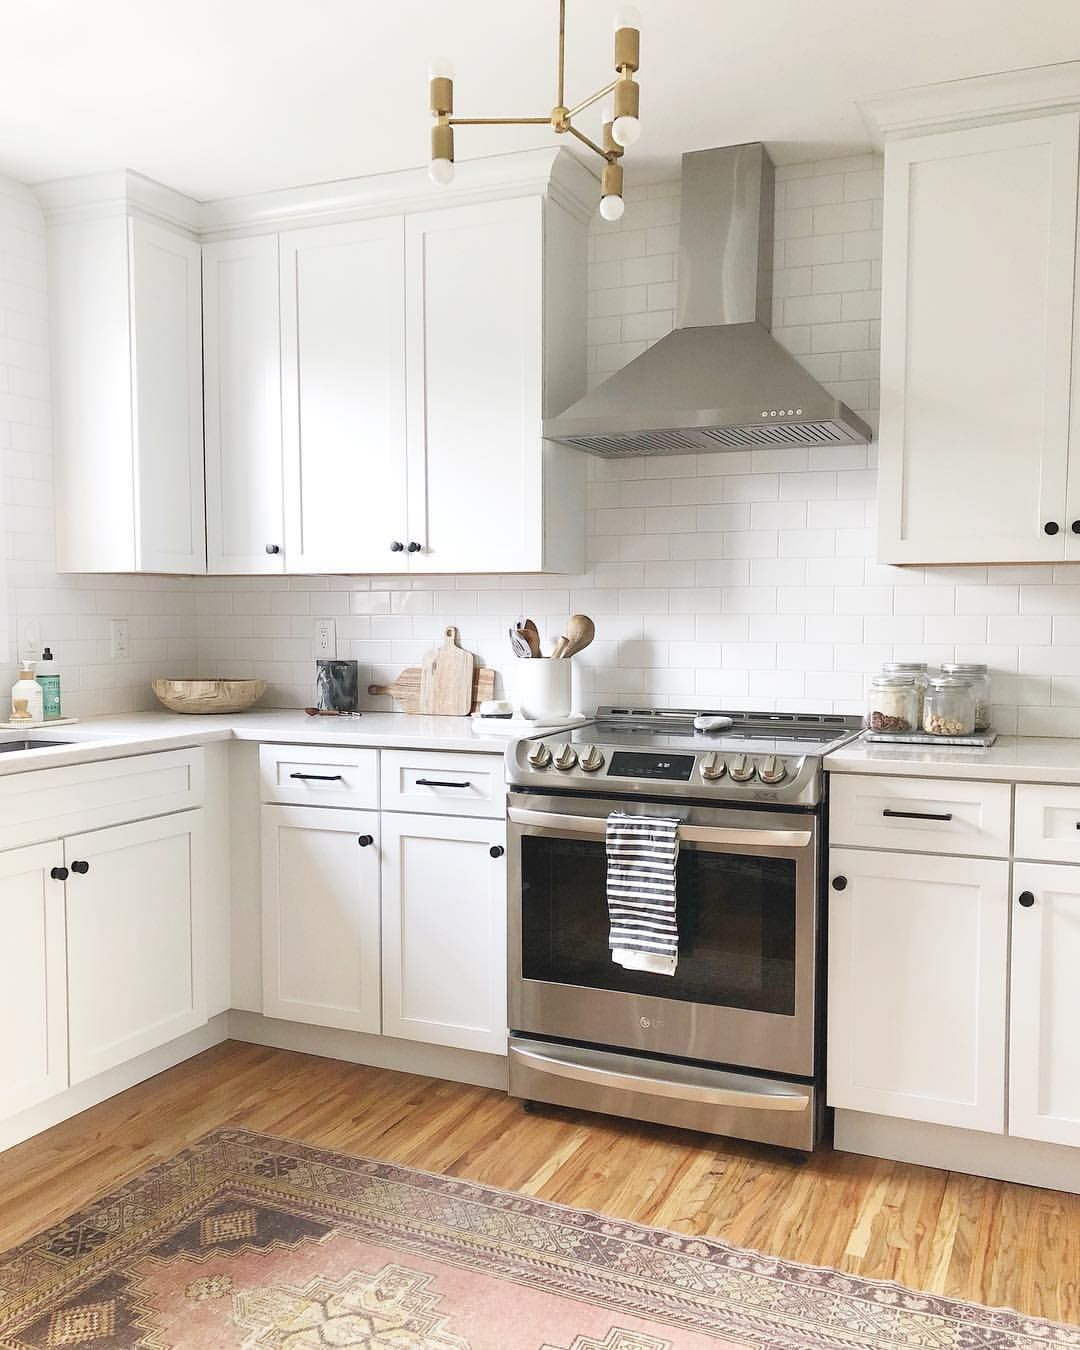 454 Likes 12 Comments L I N D S A Y Southwestbysoutheast On Instagram Bright Sun Shiny Day Black Kitchen Handles Kitchen Cabinets White Shaker Kitchen